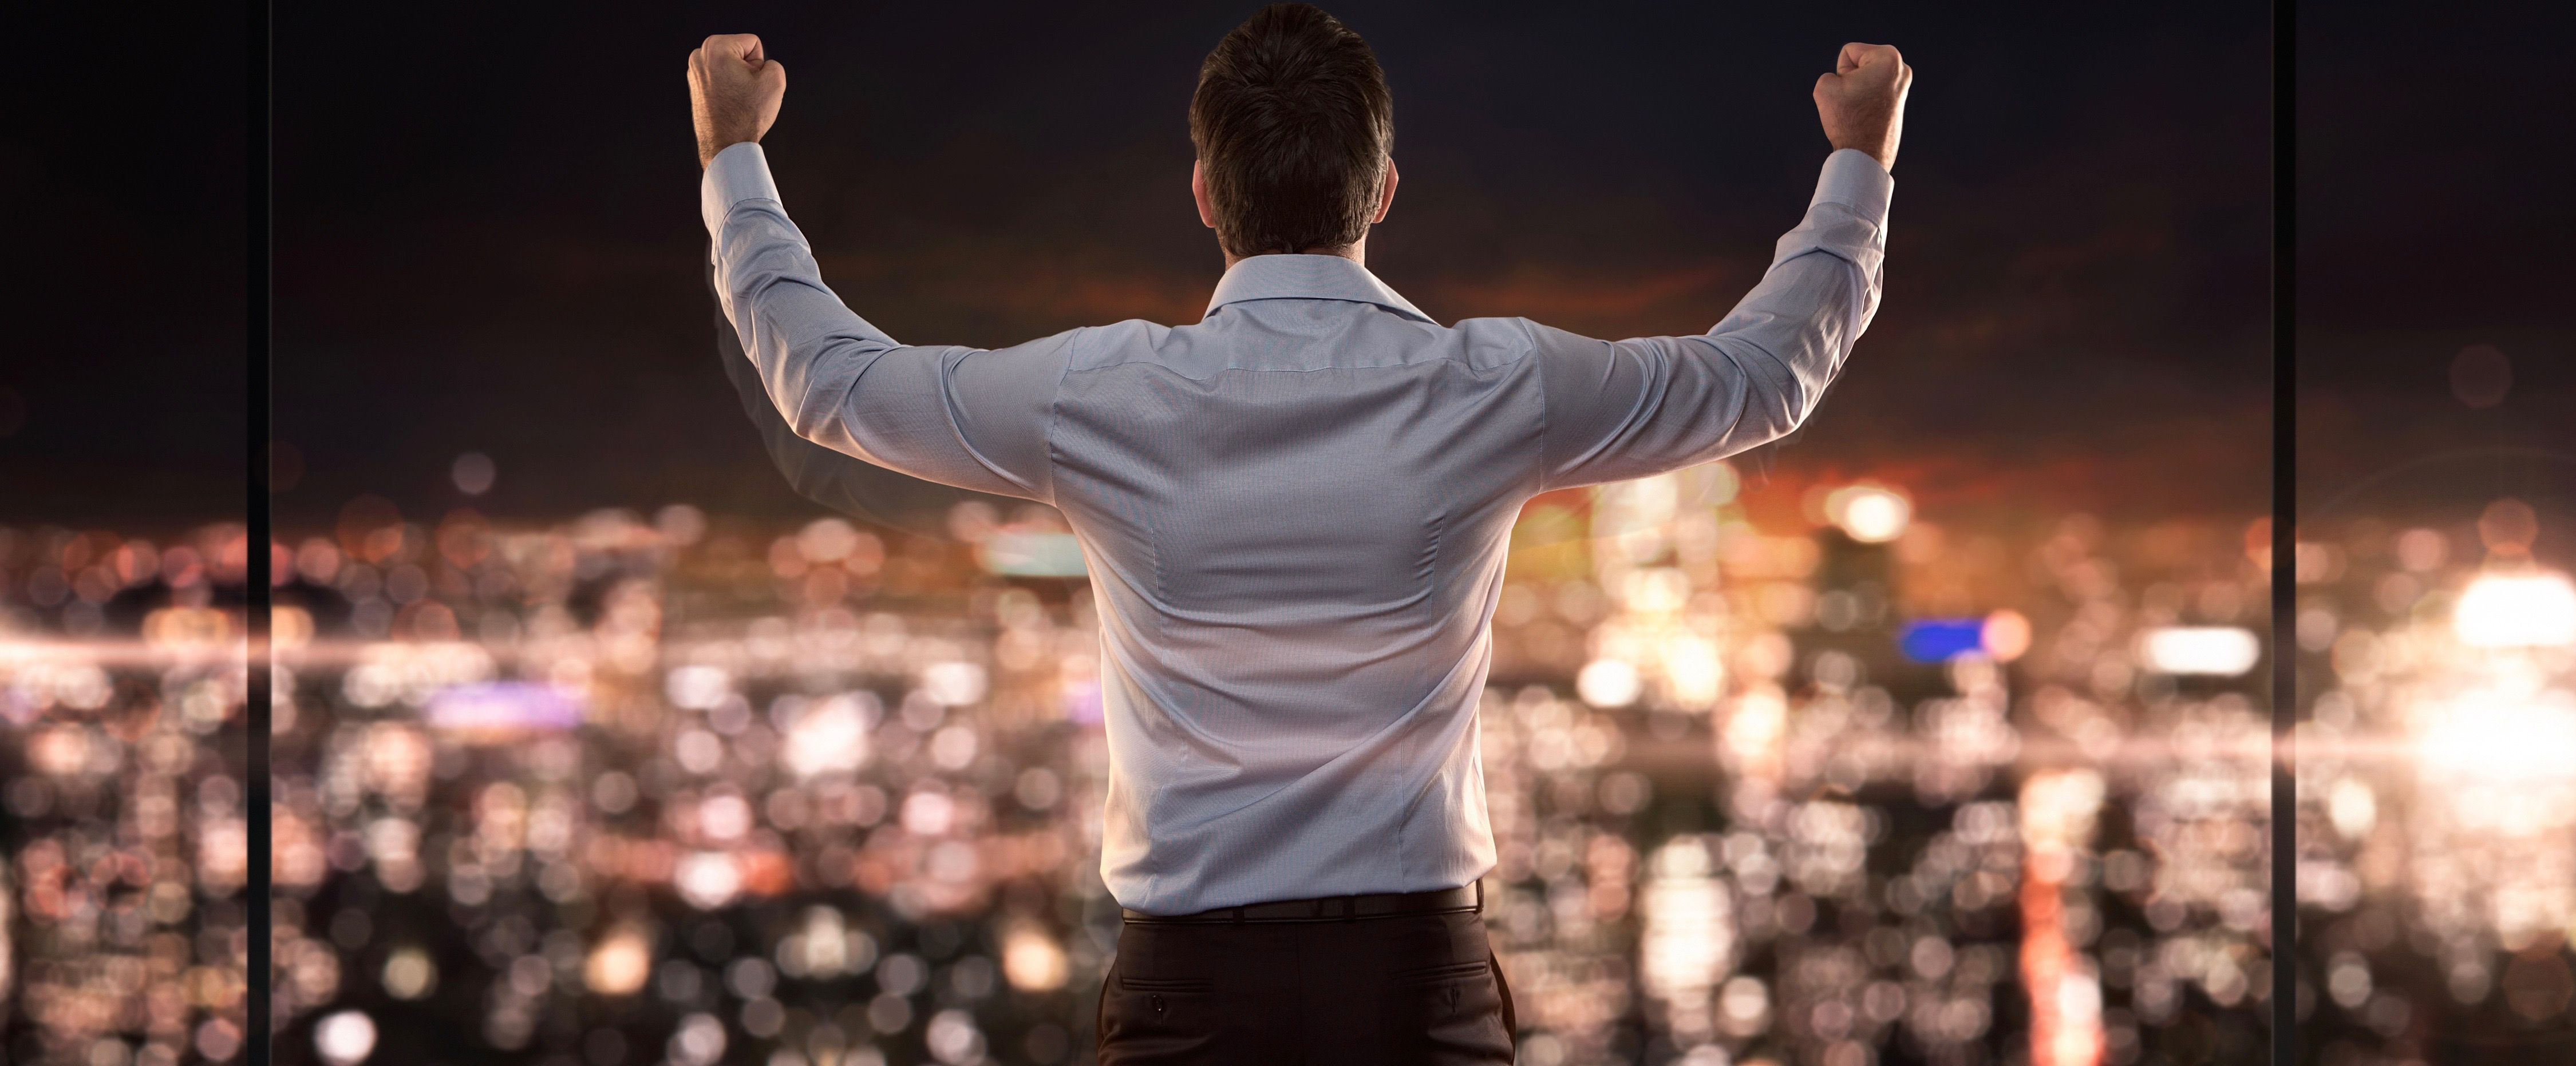 How to Build Self-Confidence After a Bad Month: 8 Helpful Tips